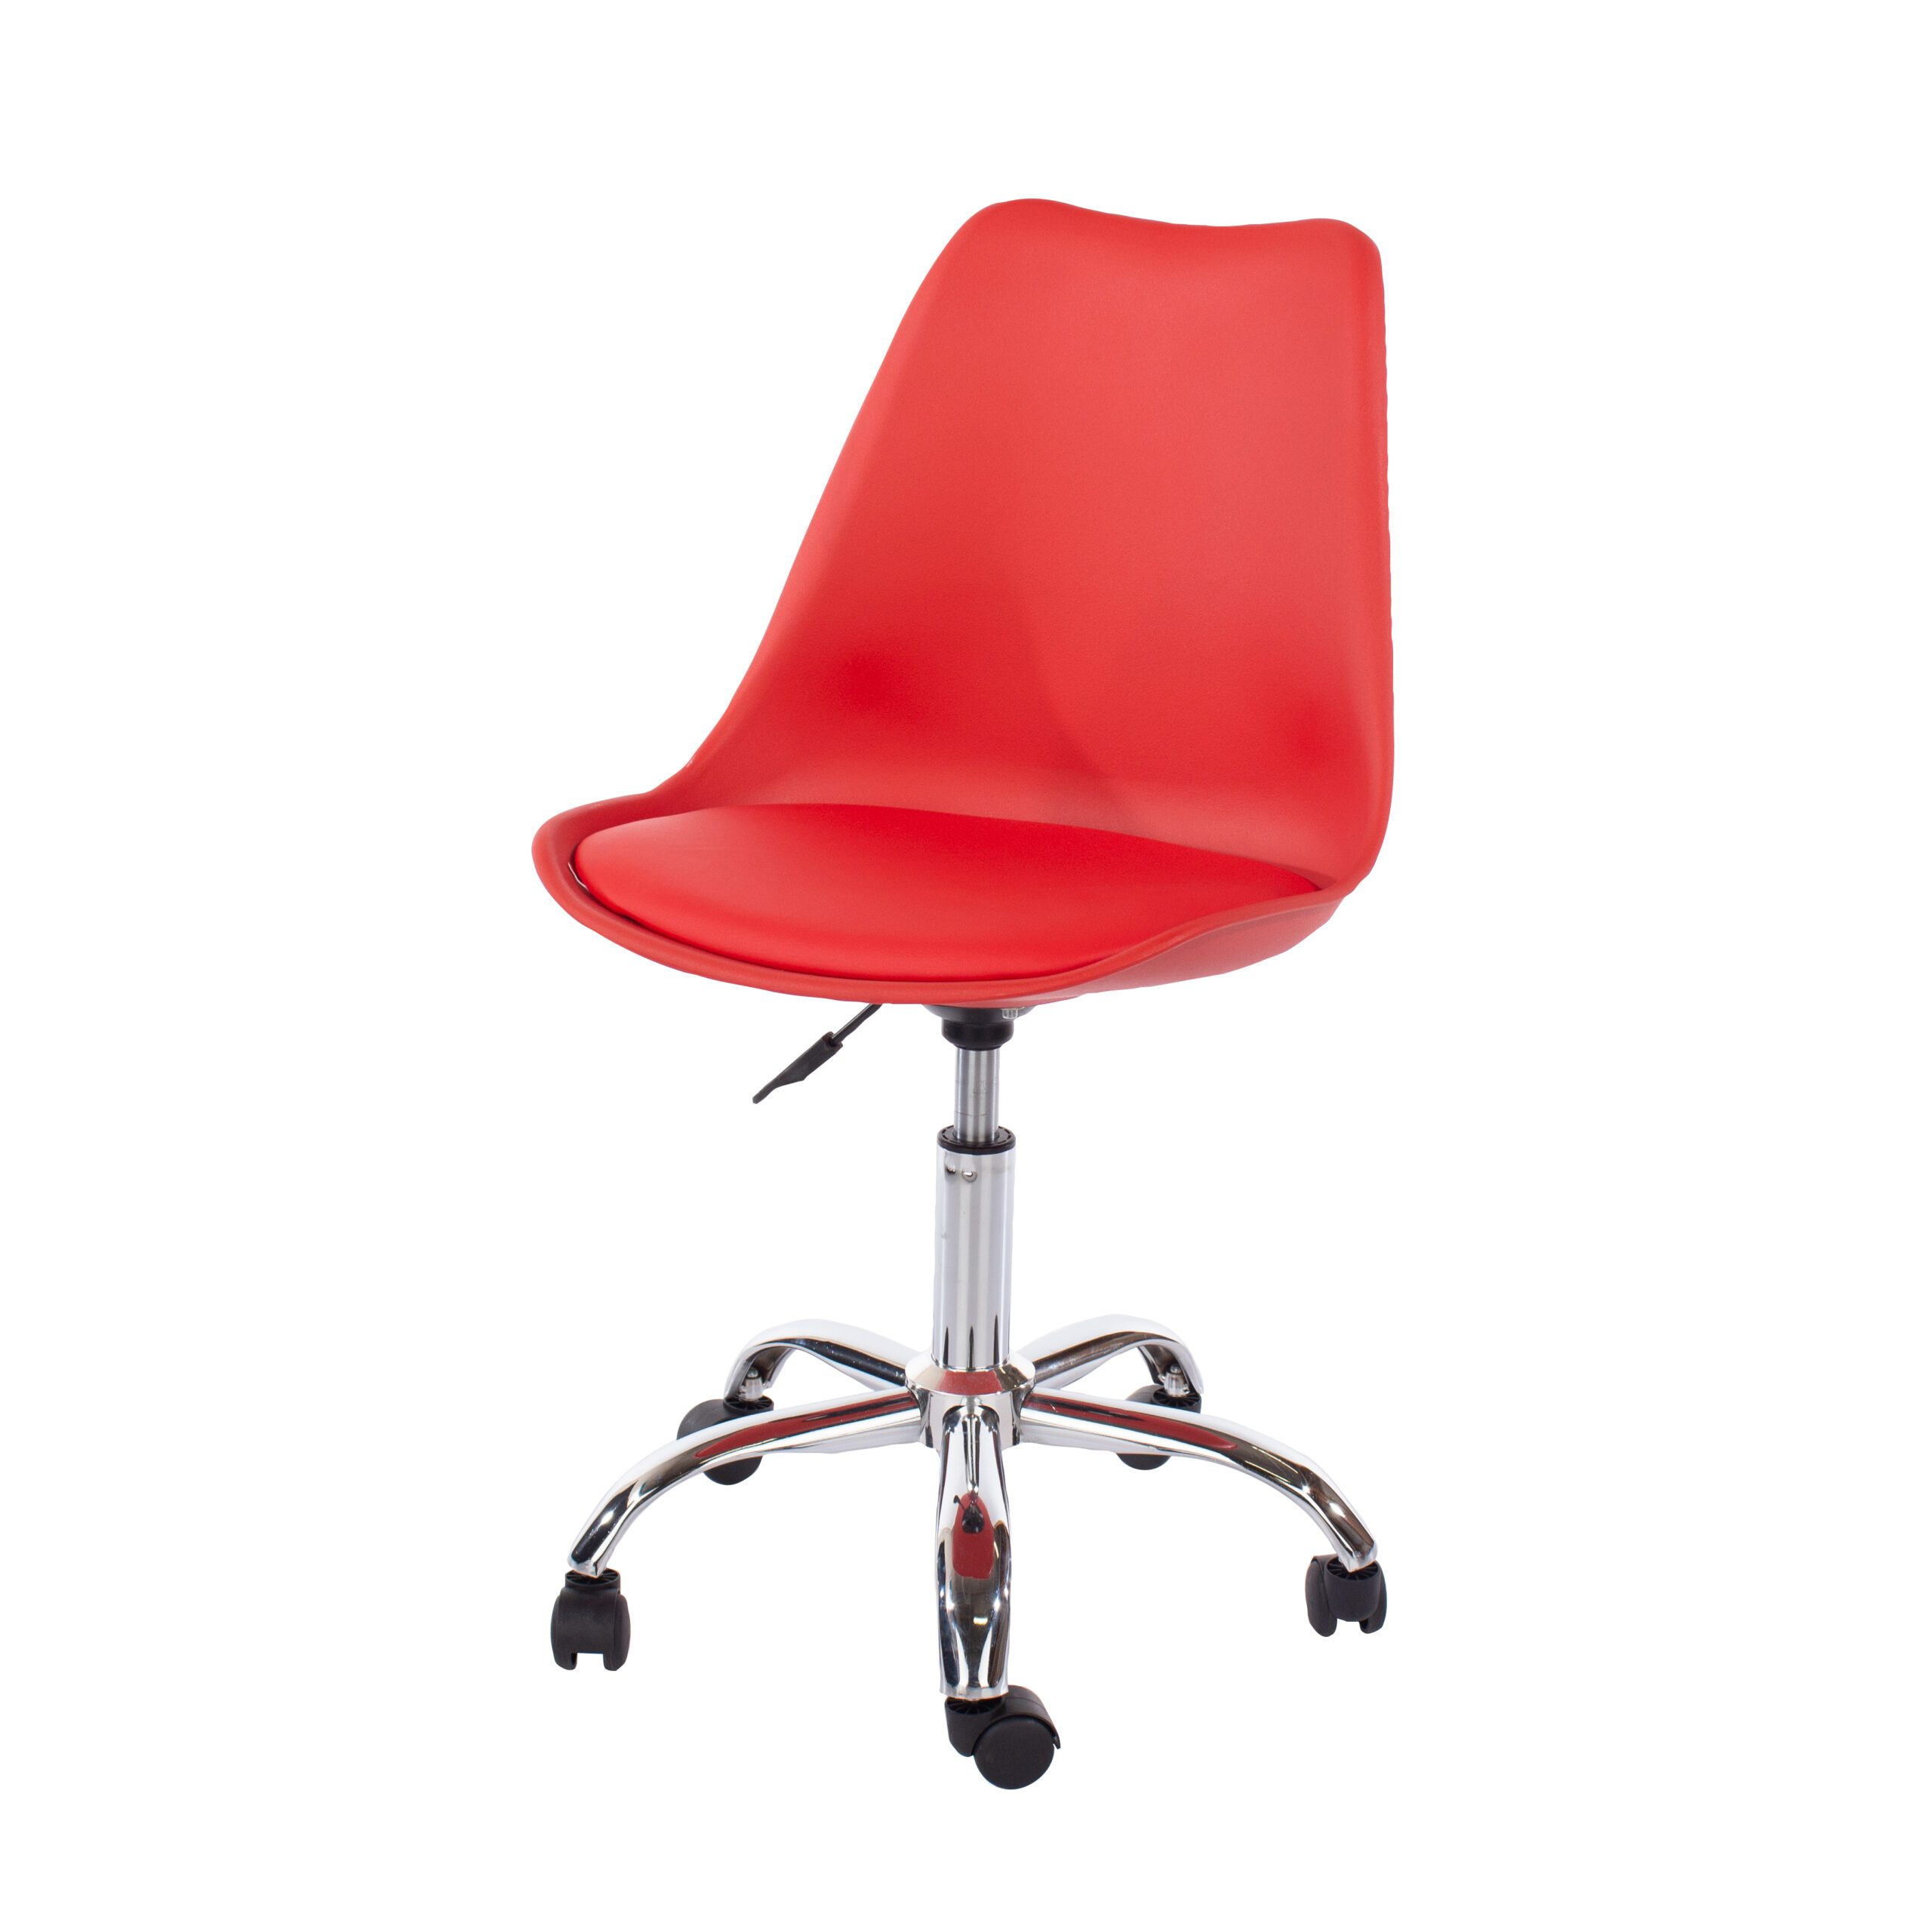 Penny home studio chair with upholstered seat in red